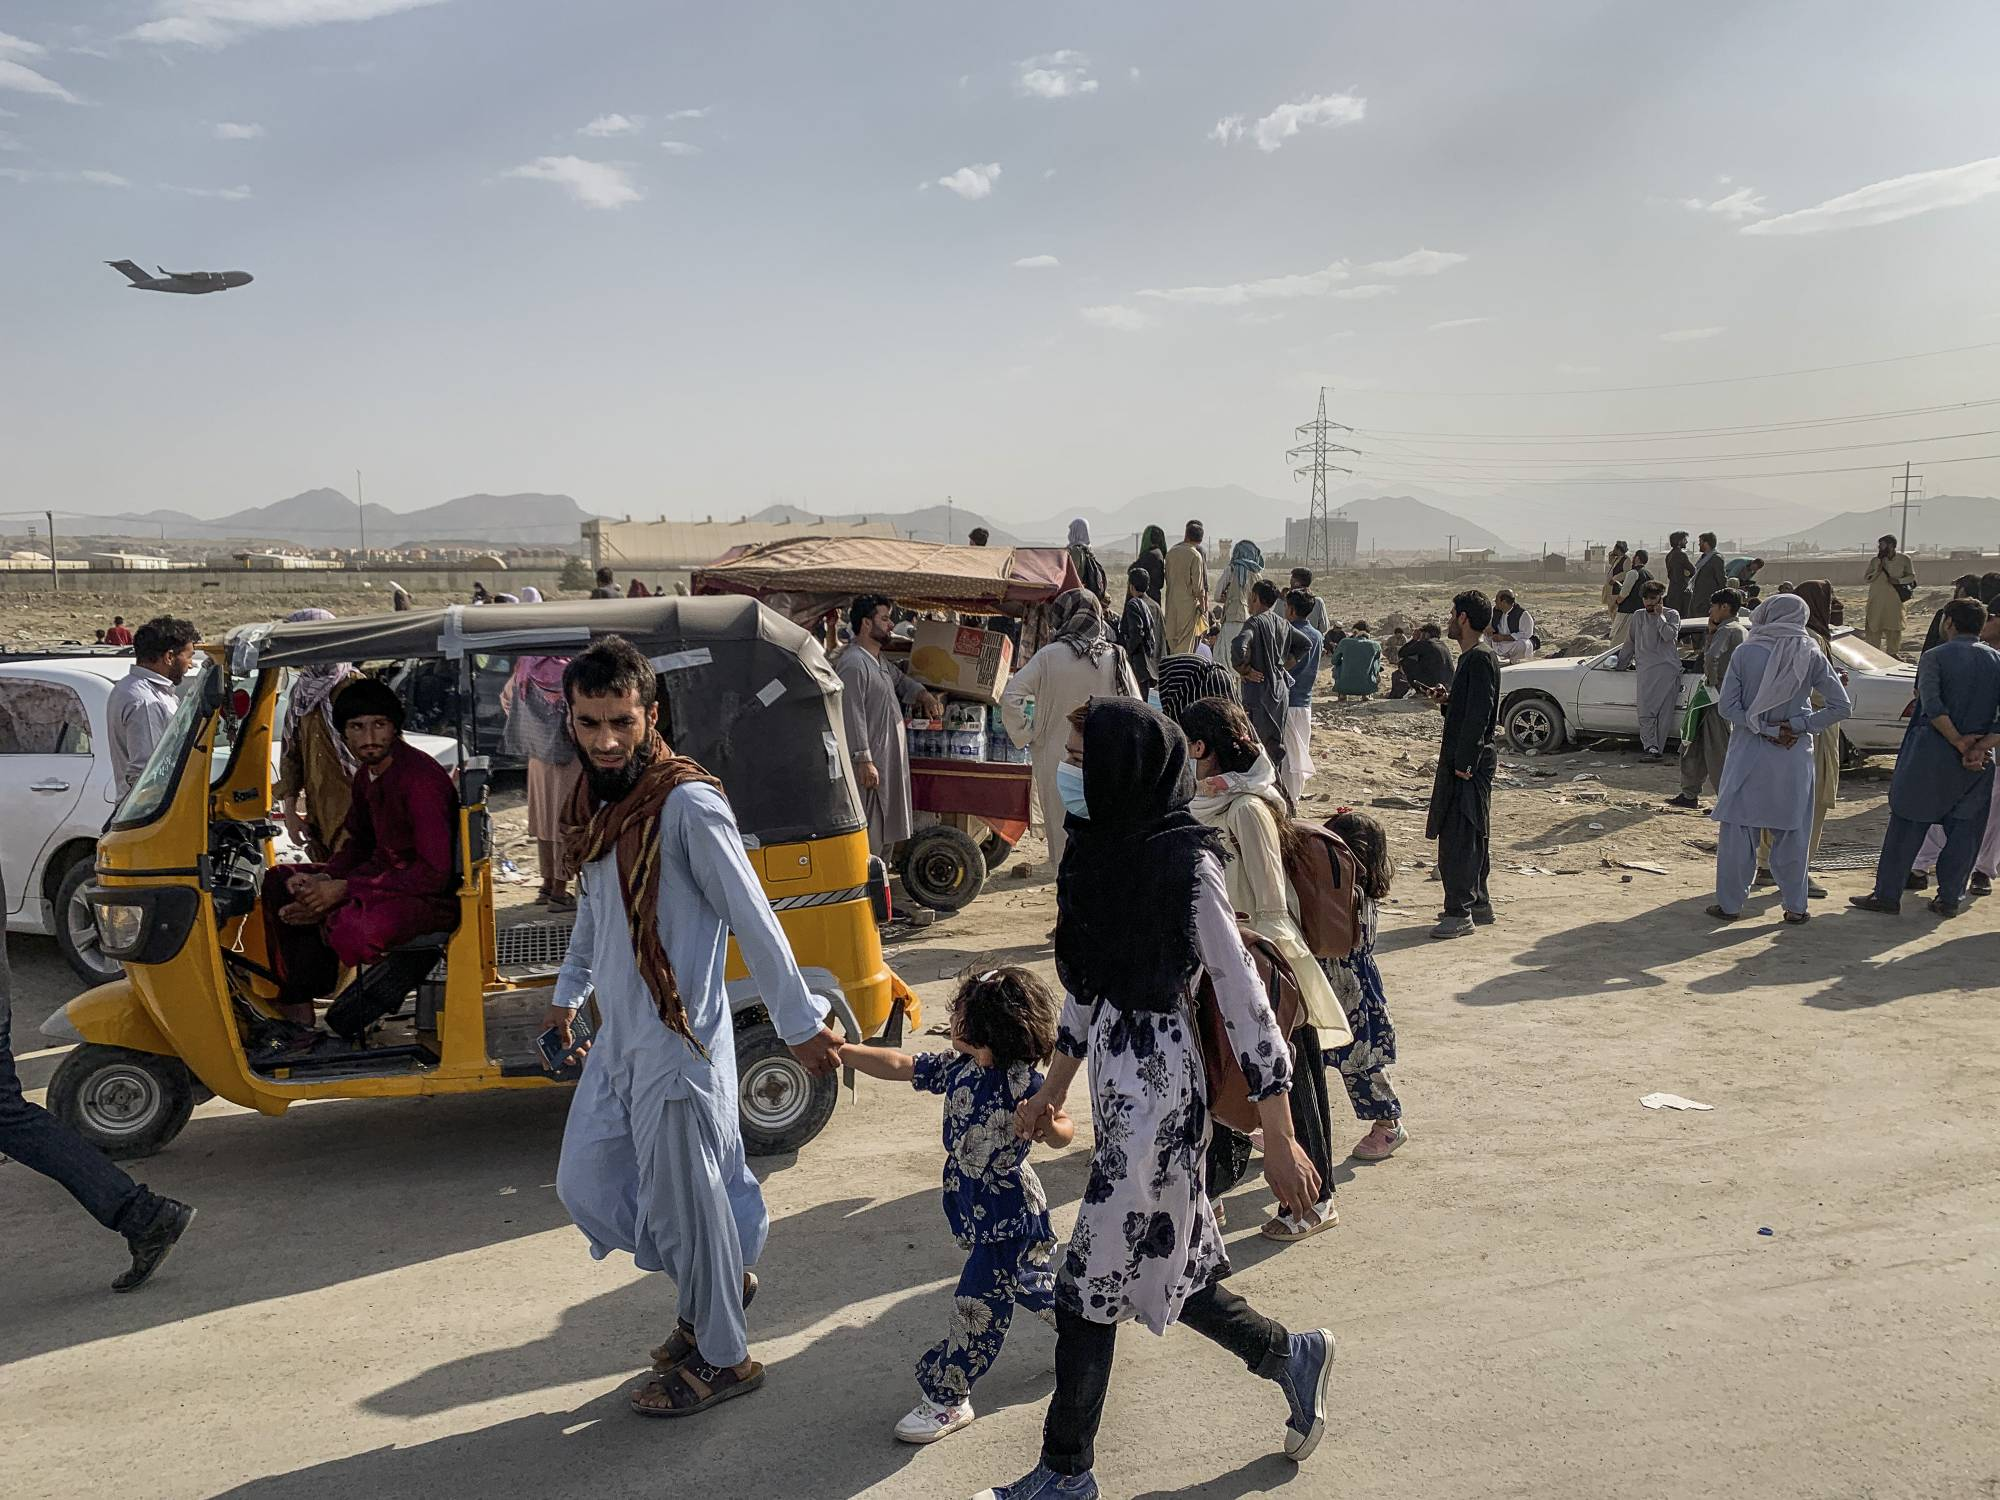 People wait outside Hamid Karzai International Airport in Kabul as a military transport plane takes off behind them on Saturday.  | JIM HUYLEBROEK / THE NEW YORK TIMES